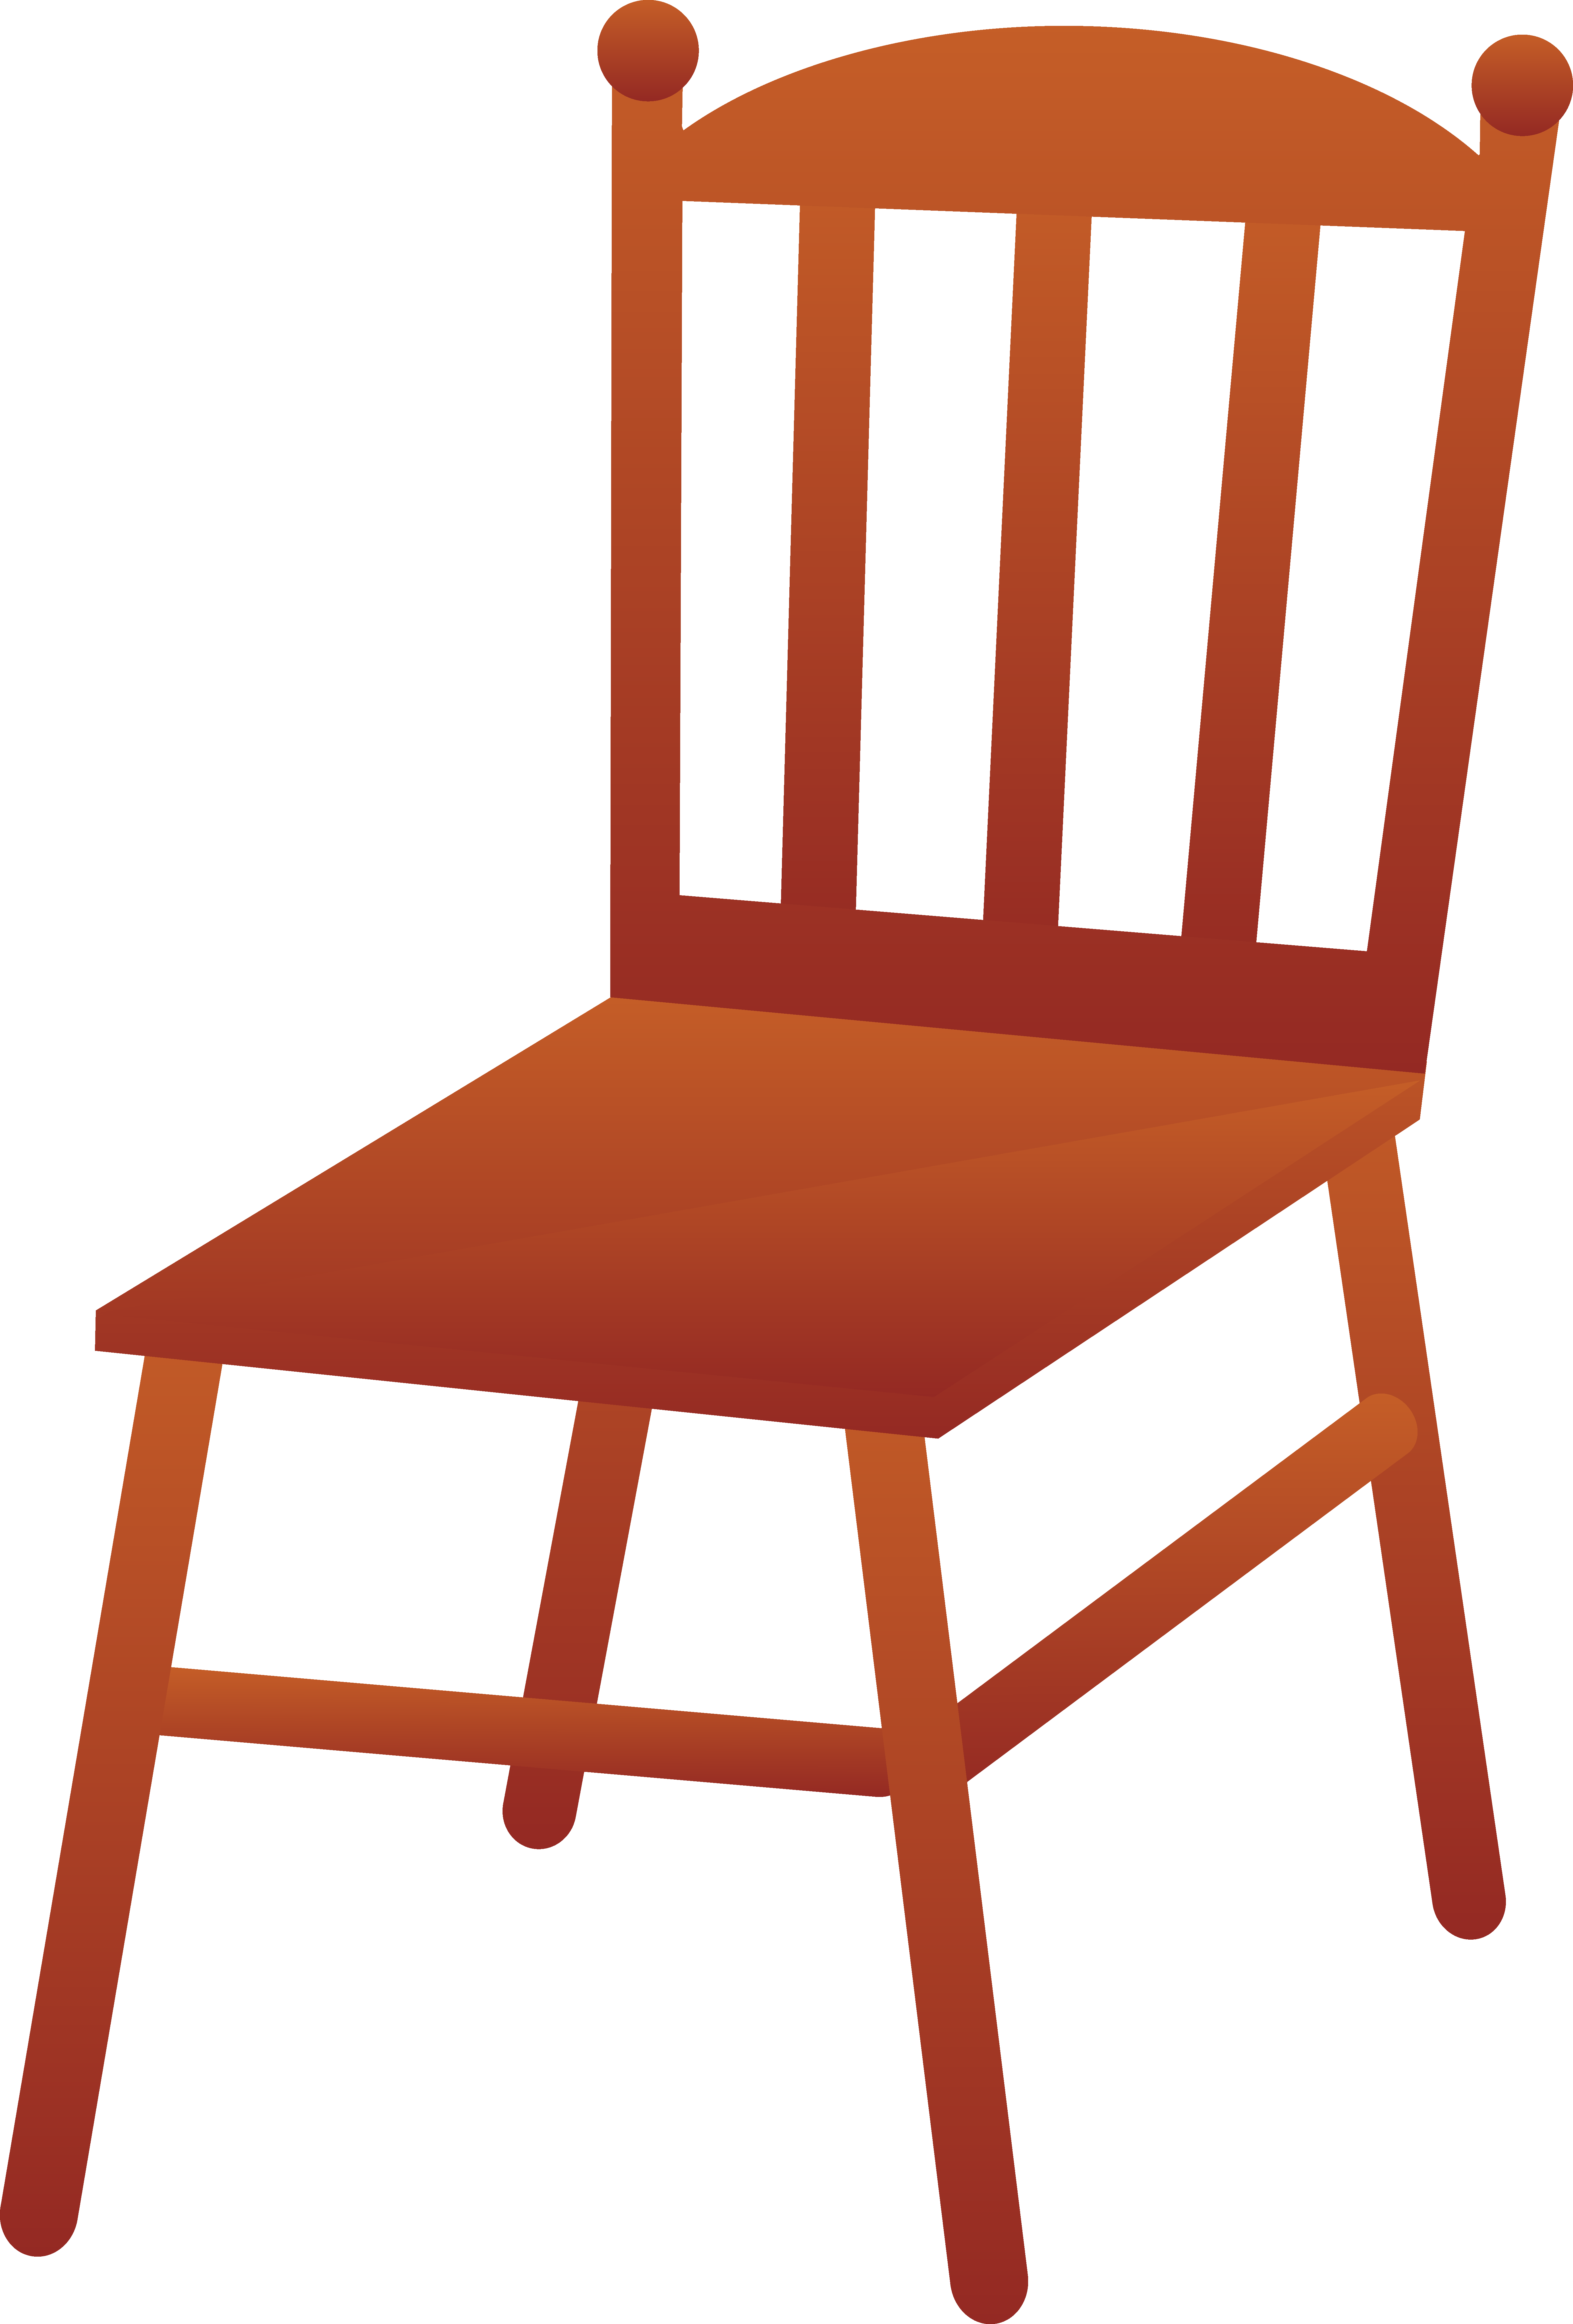 Chairs Clipart - Chairs Clipart